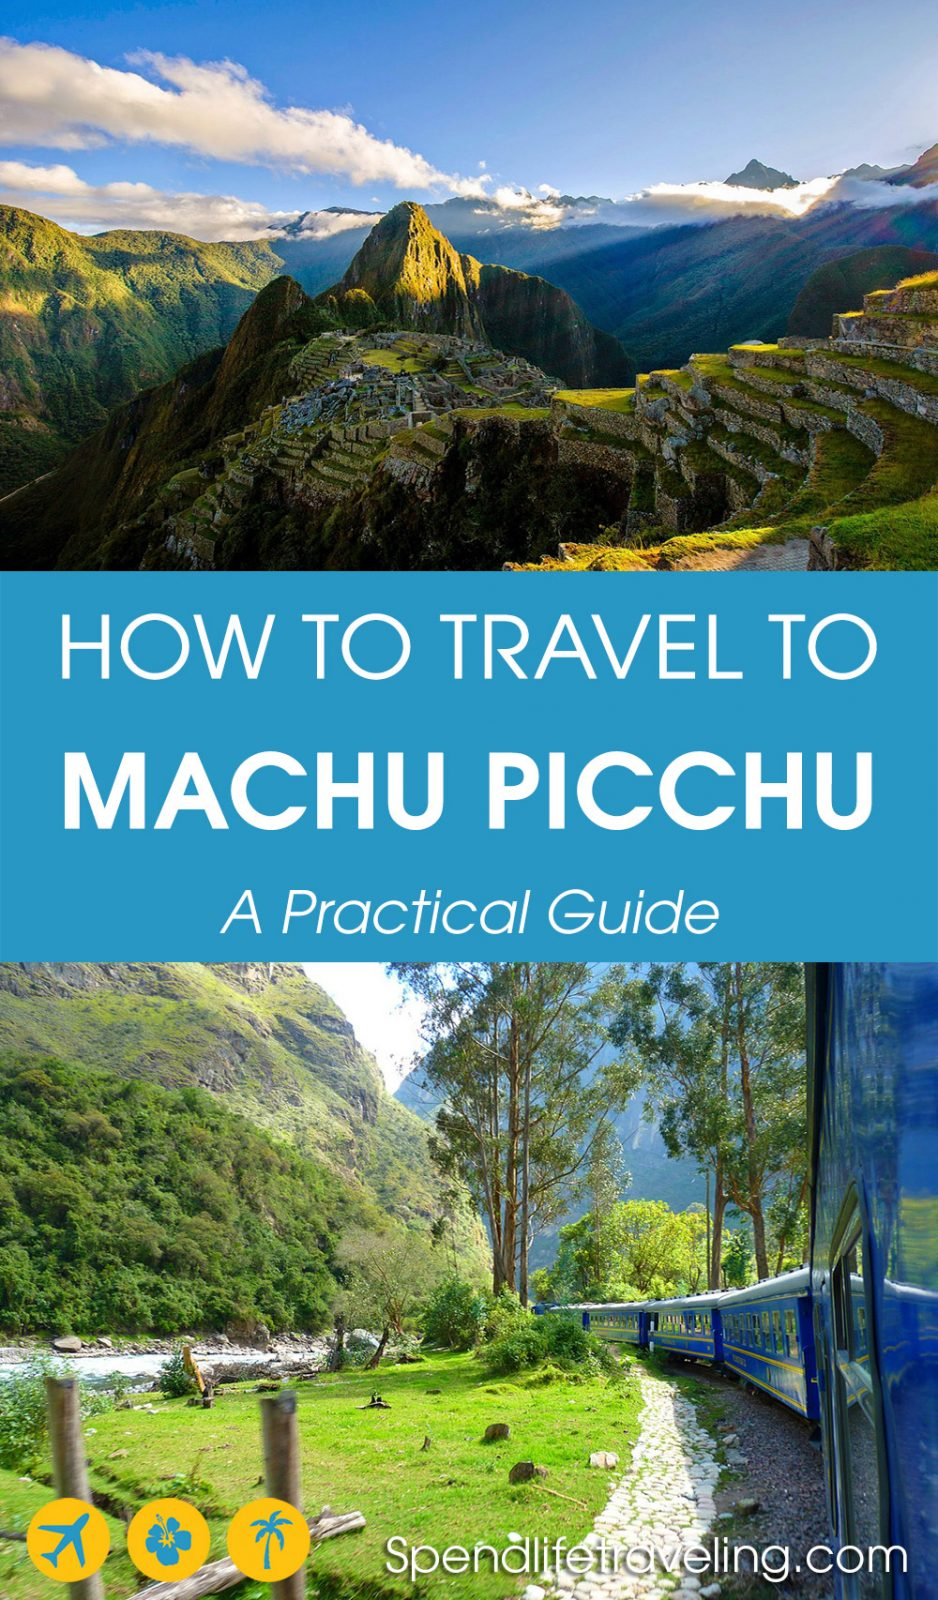 a guide for how to get to Machu Picchu